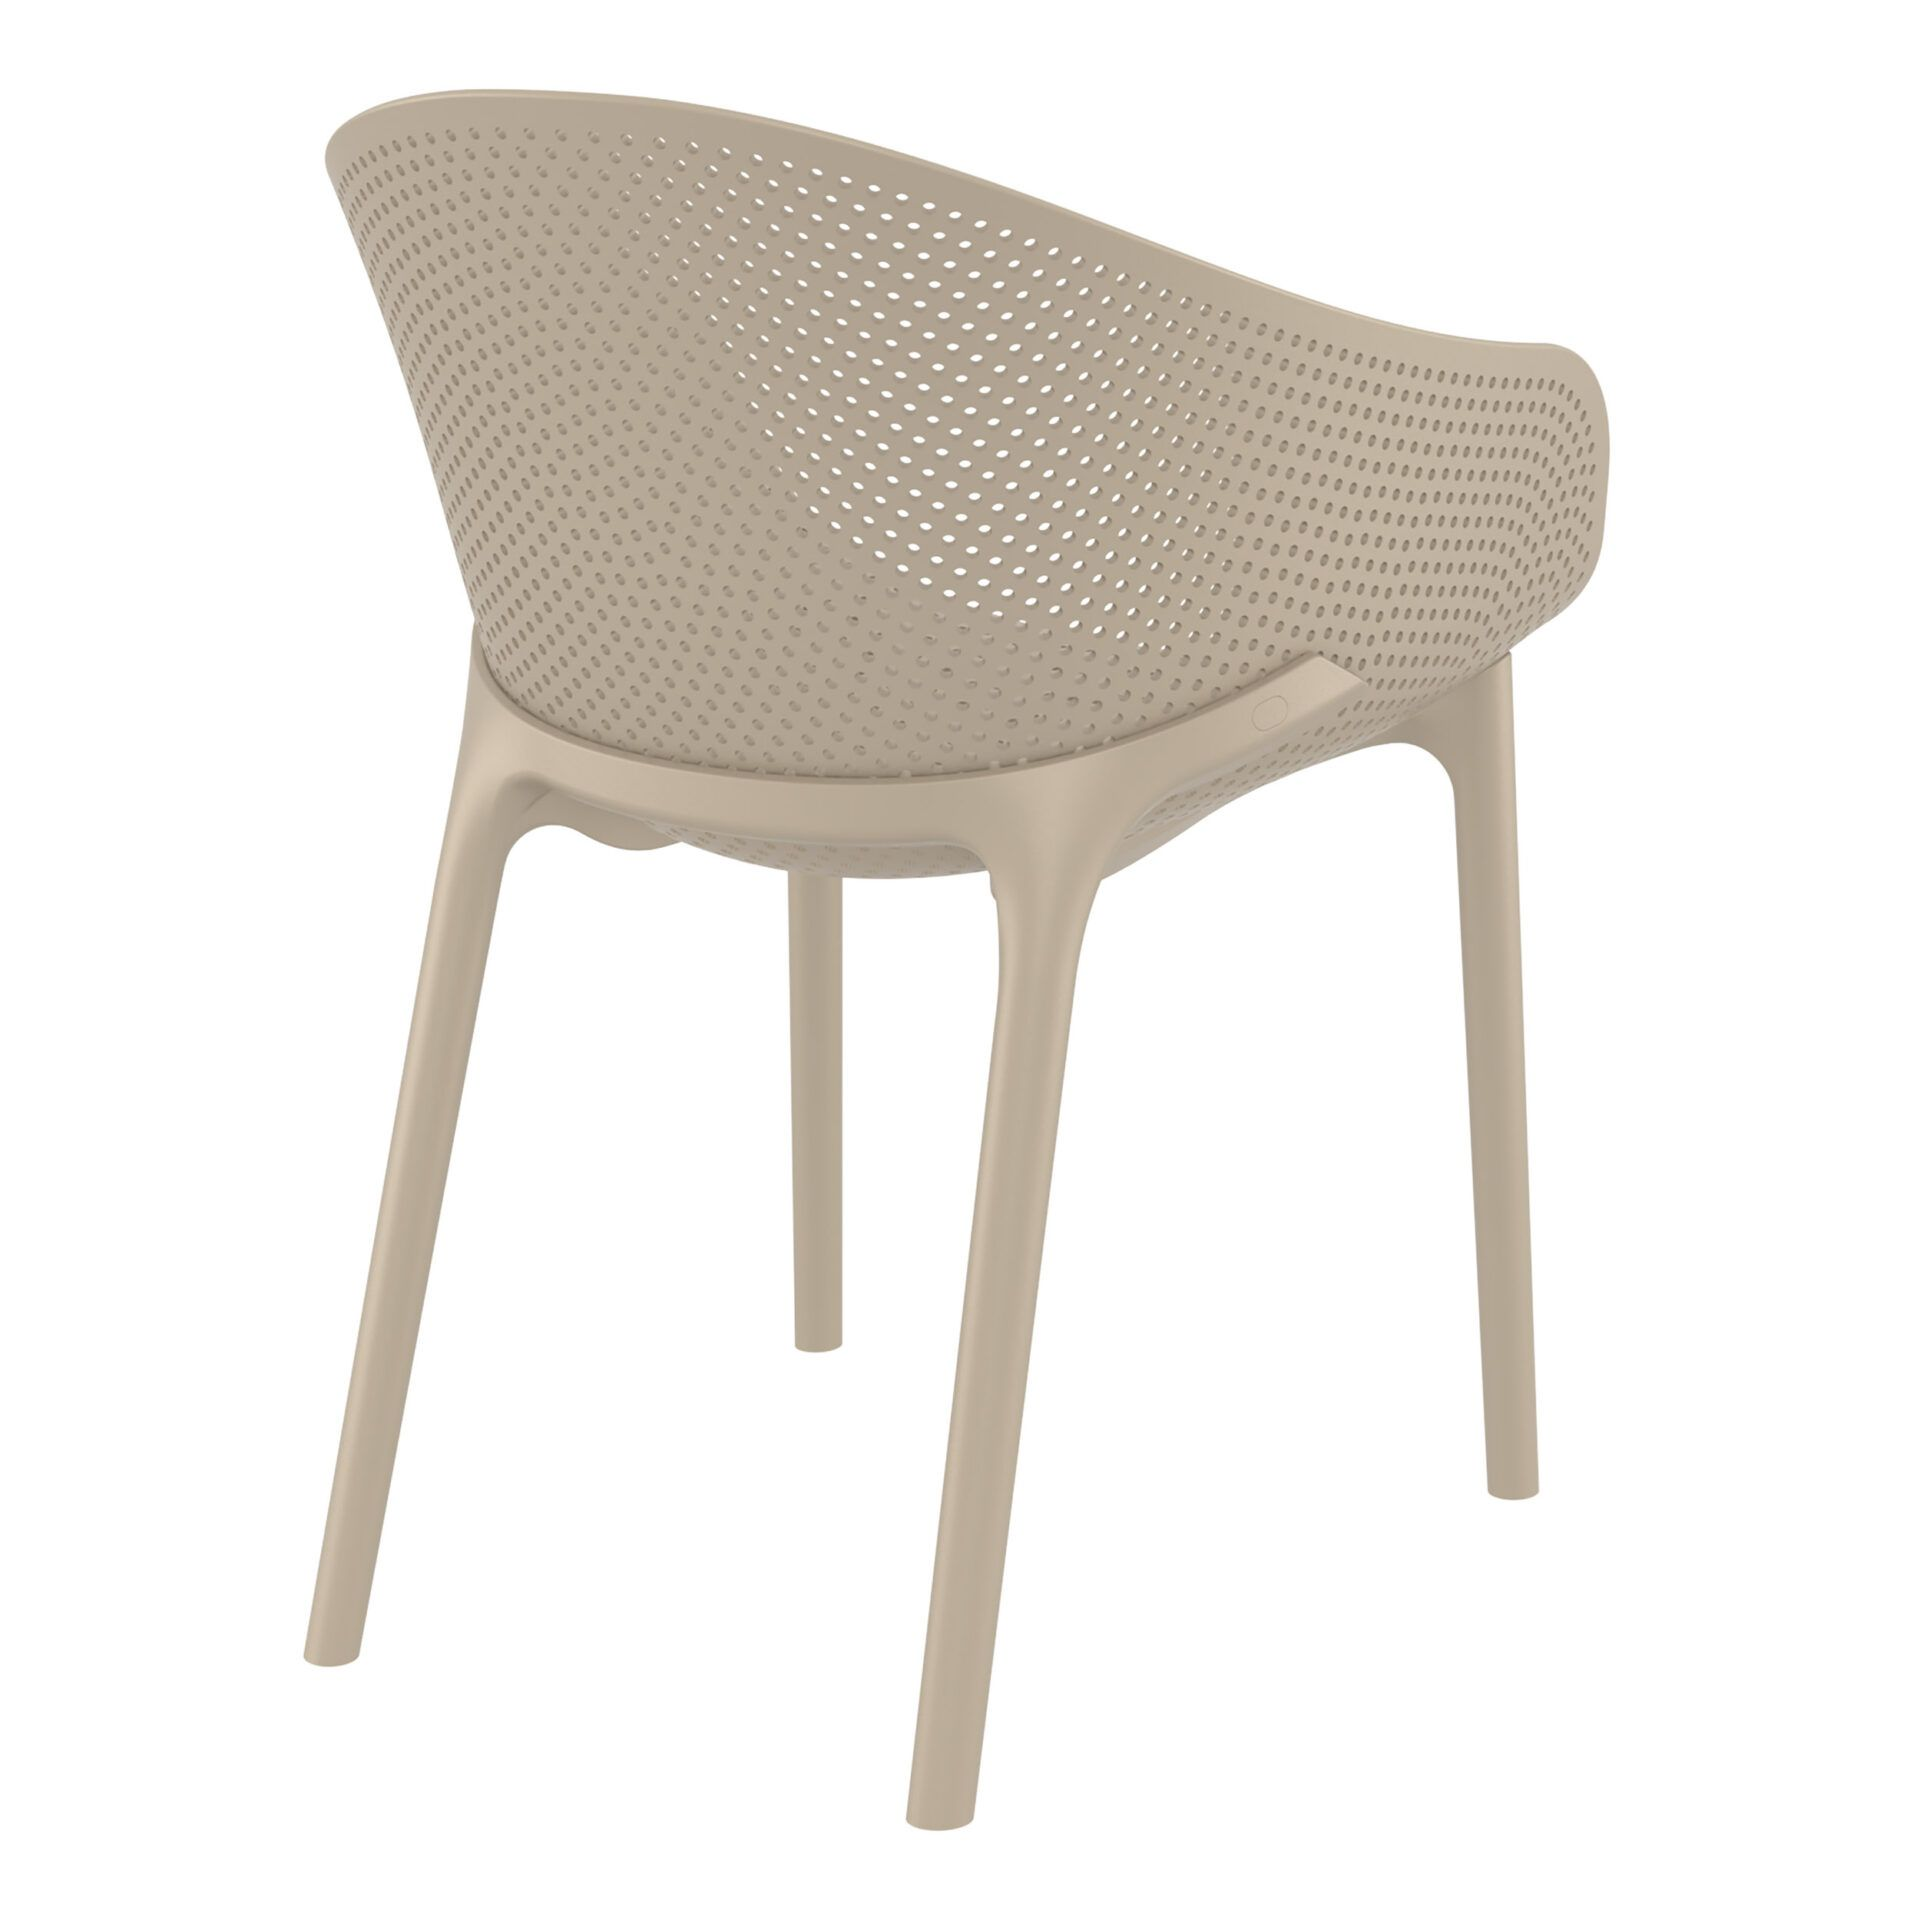 outdoor seating polypropylene sky chair taupe back side